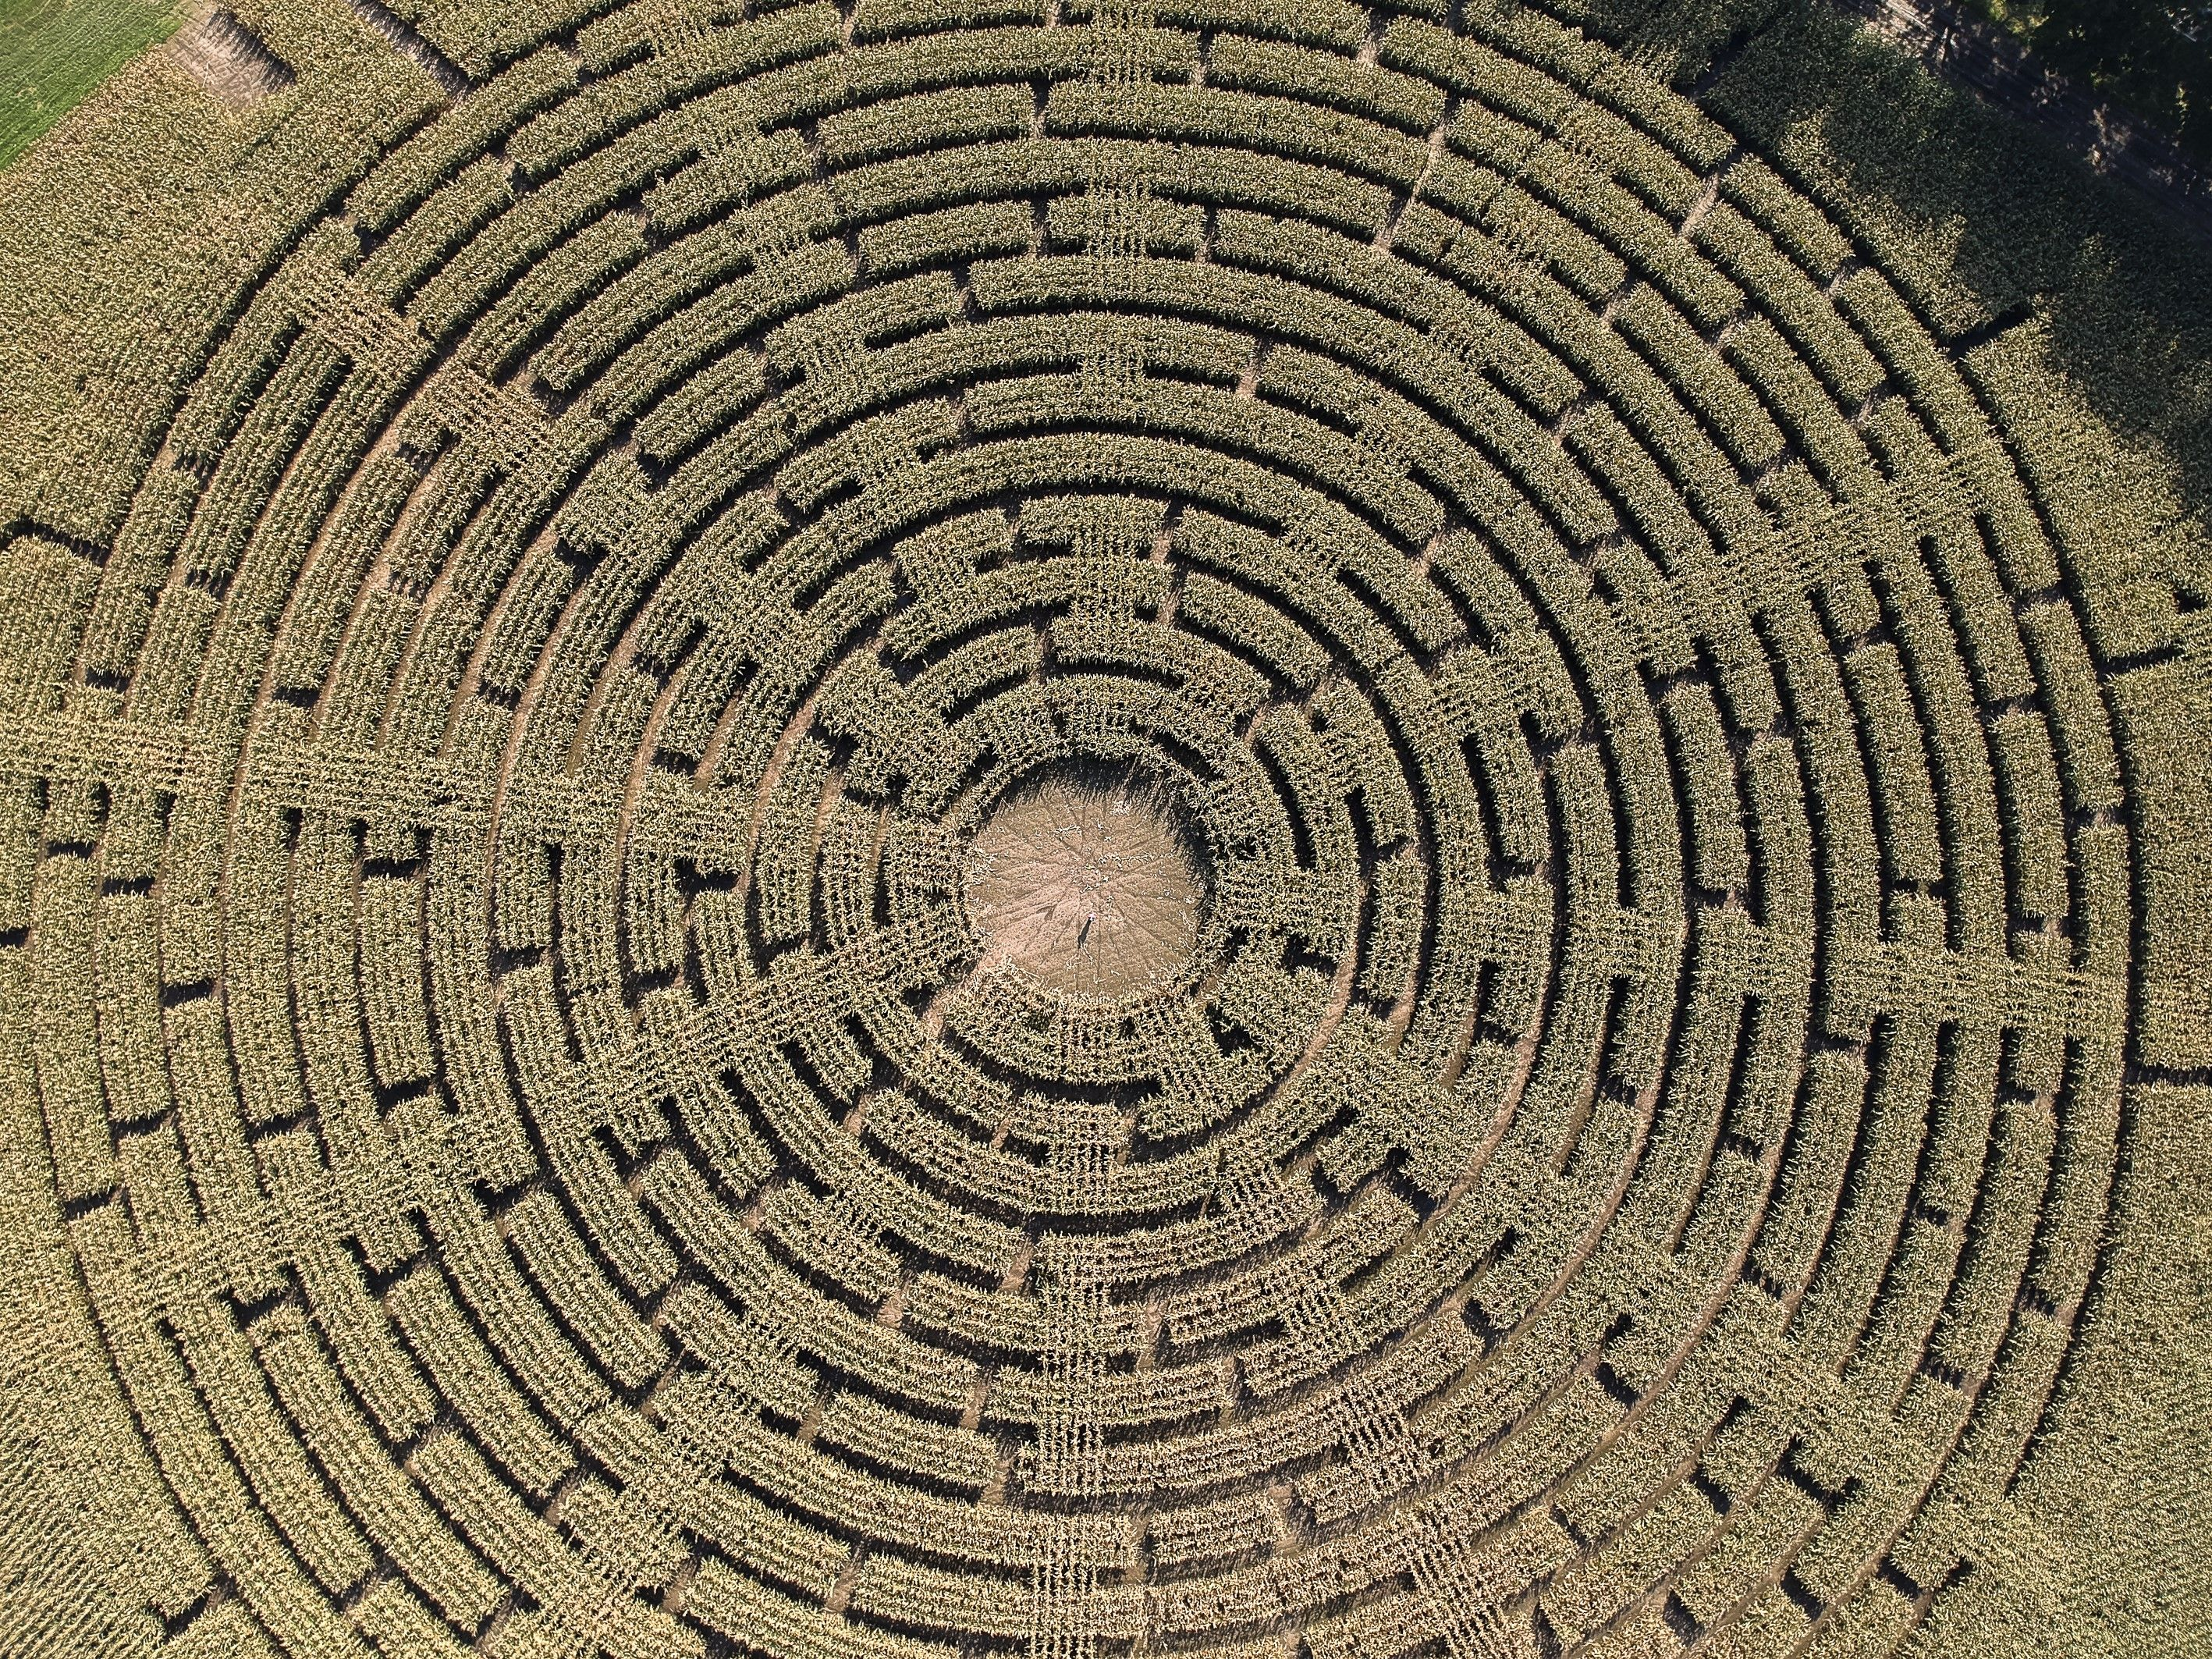 How To Draw A Perfect Circle 2009 Online 30 stunning crop circles and corn mazes photographed from above